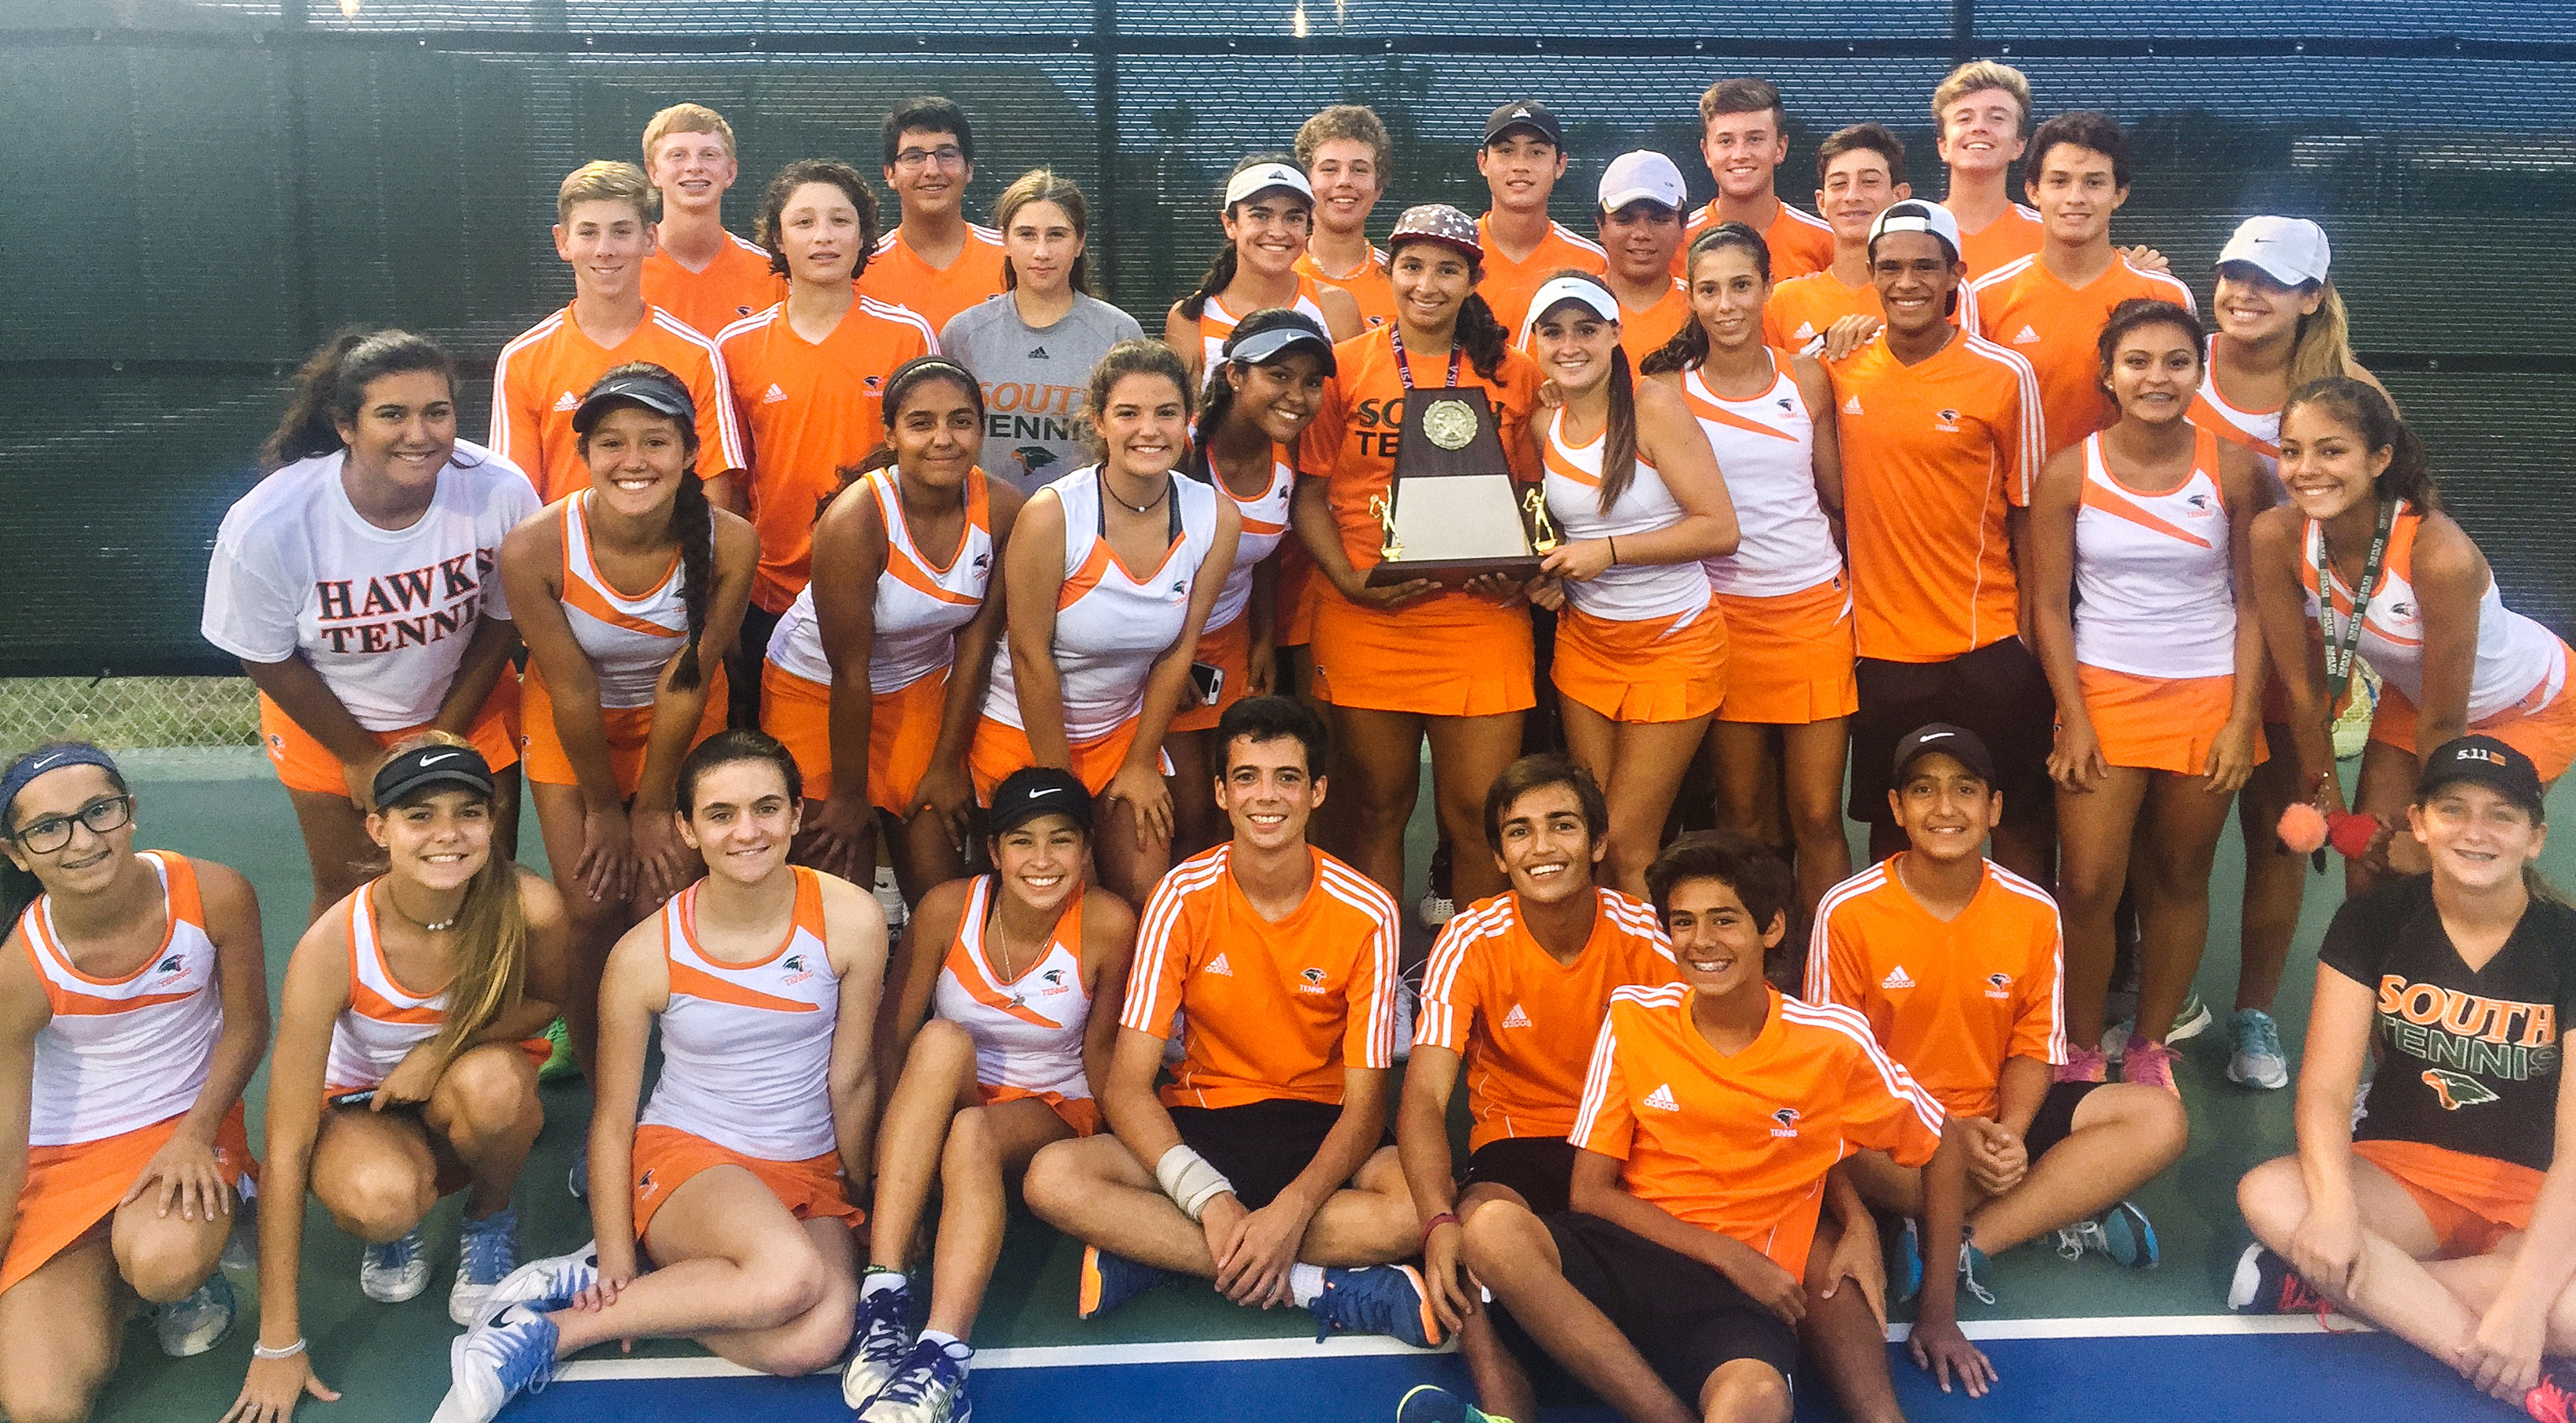 Harlingen South Tennis Team named Area Champions, HS Teams advance to Regionals